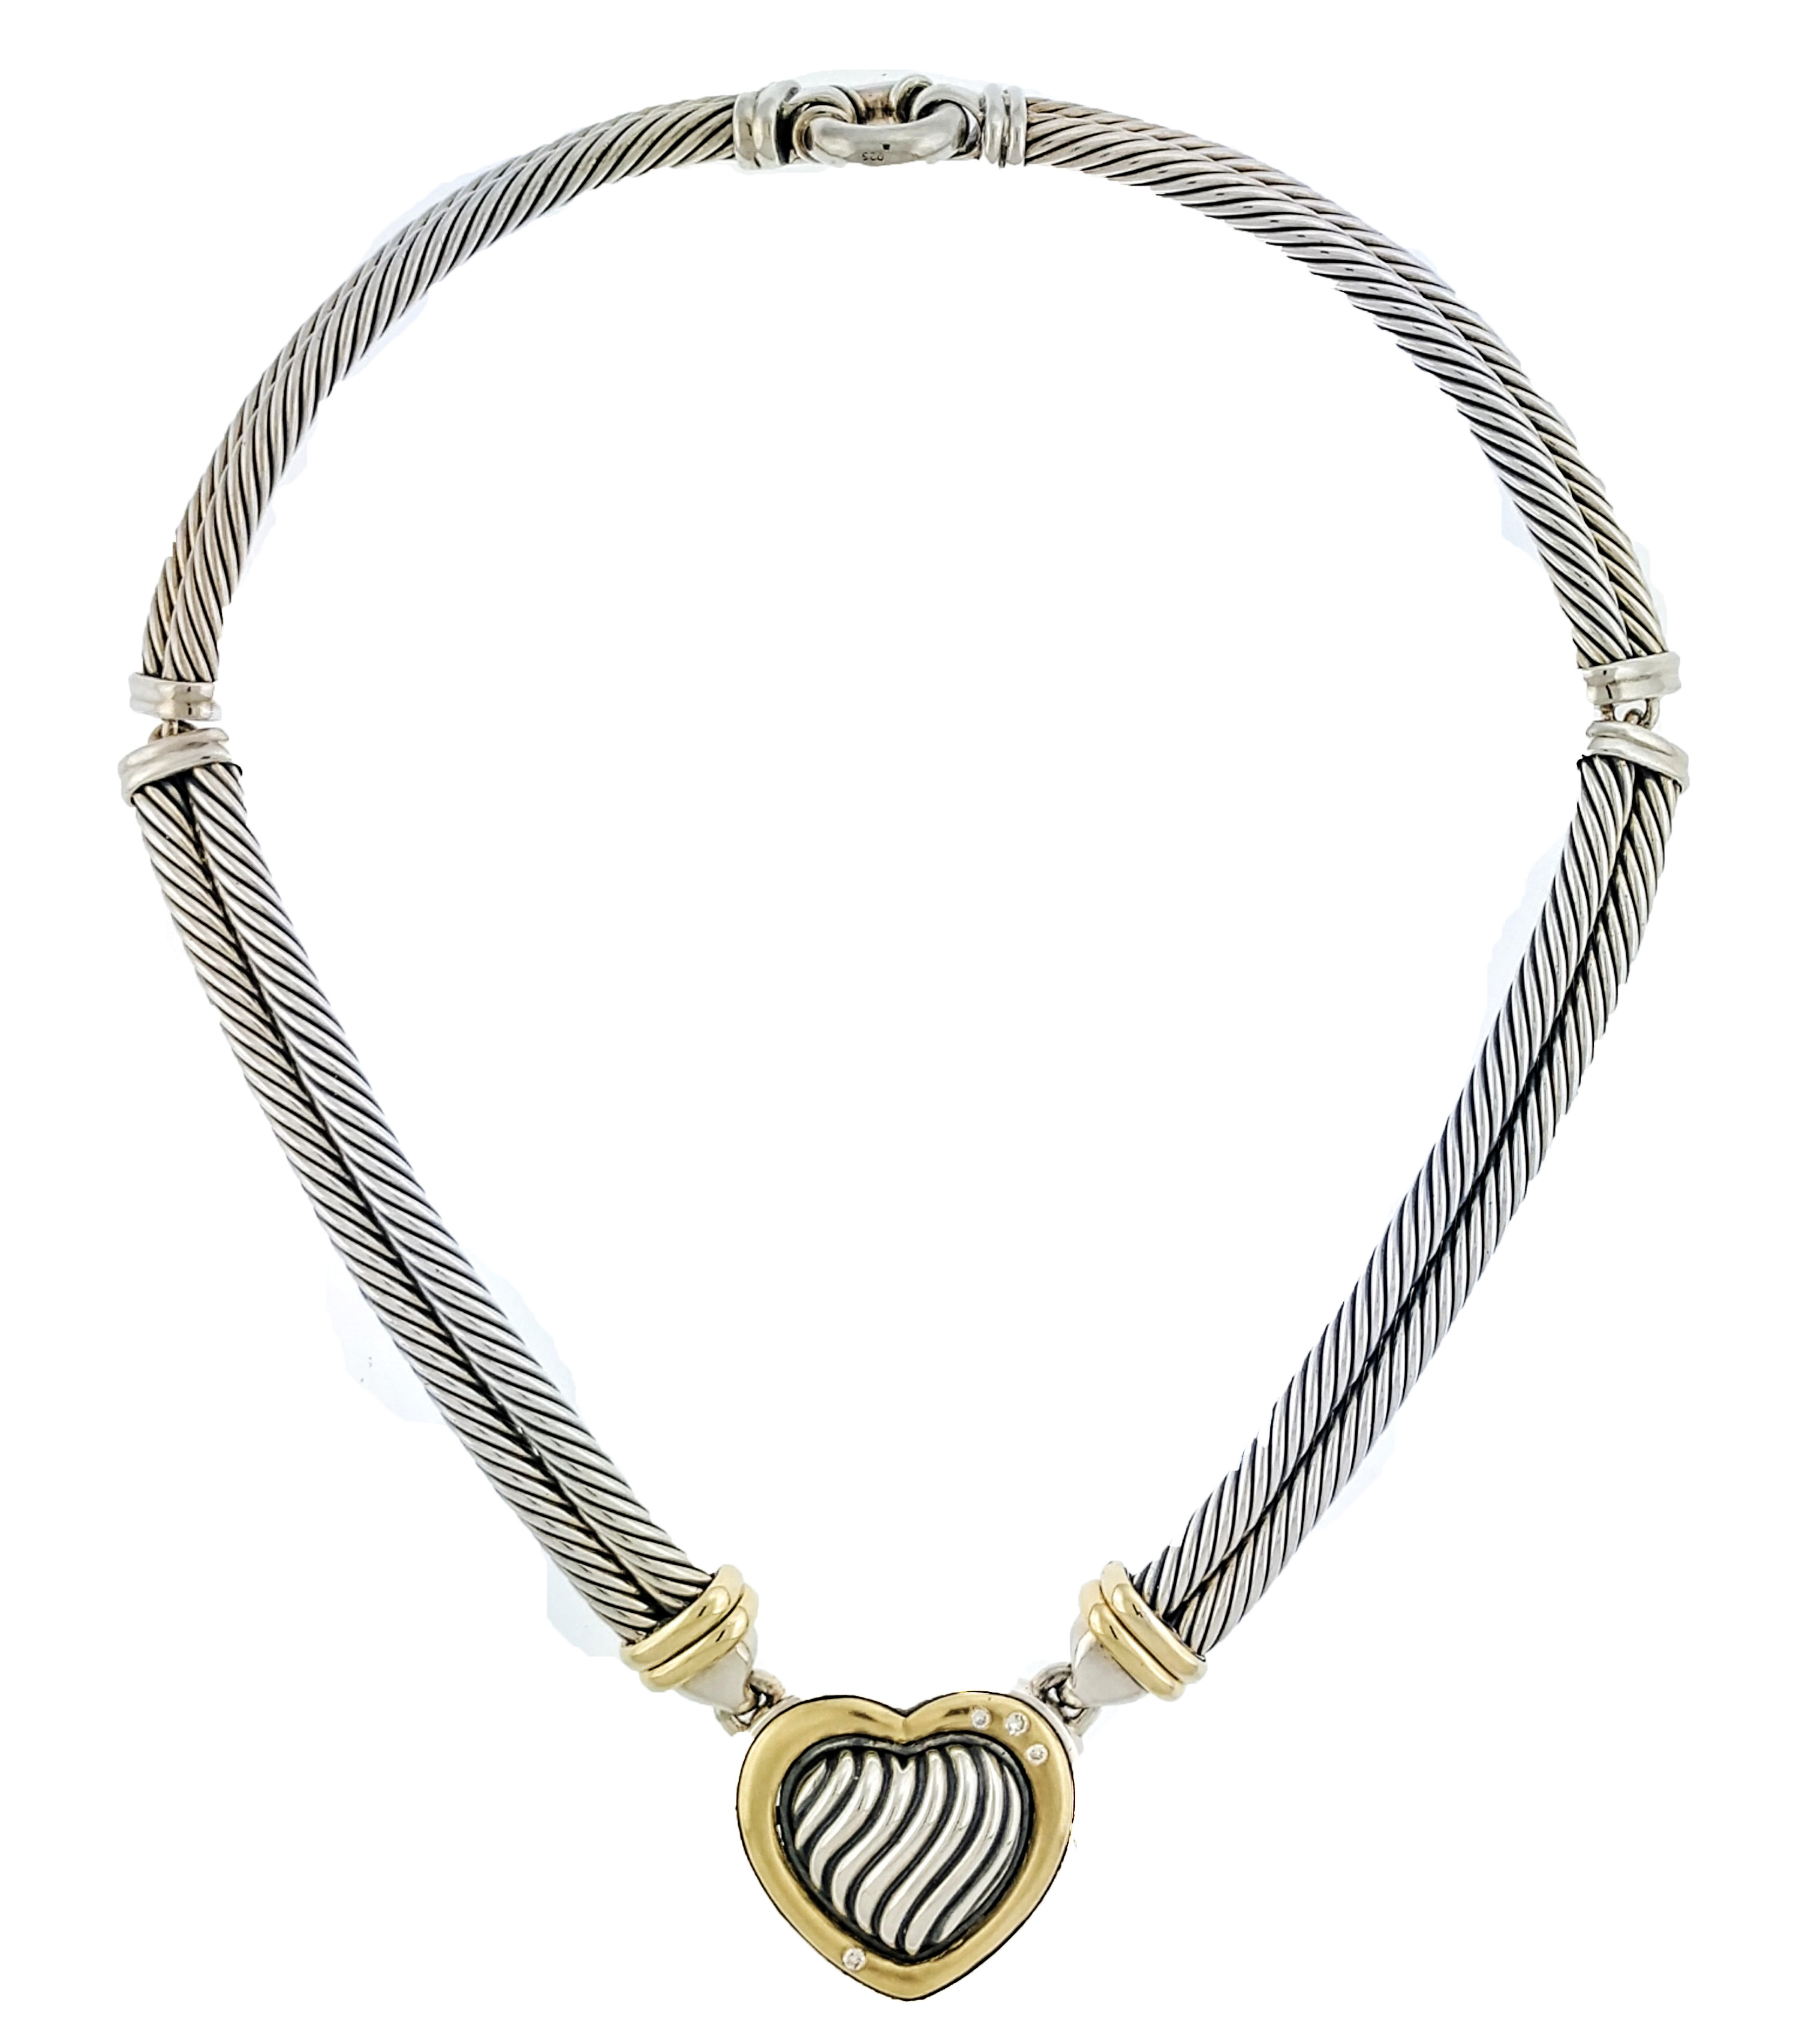 186df5d58c424 David Yurman 18k Gold Sterling Silver Diamond Double Cable Hinged Heart  Necklace